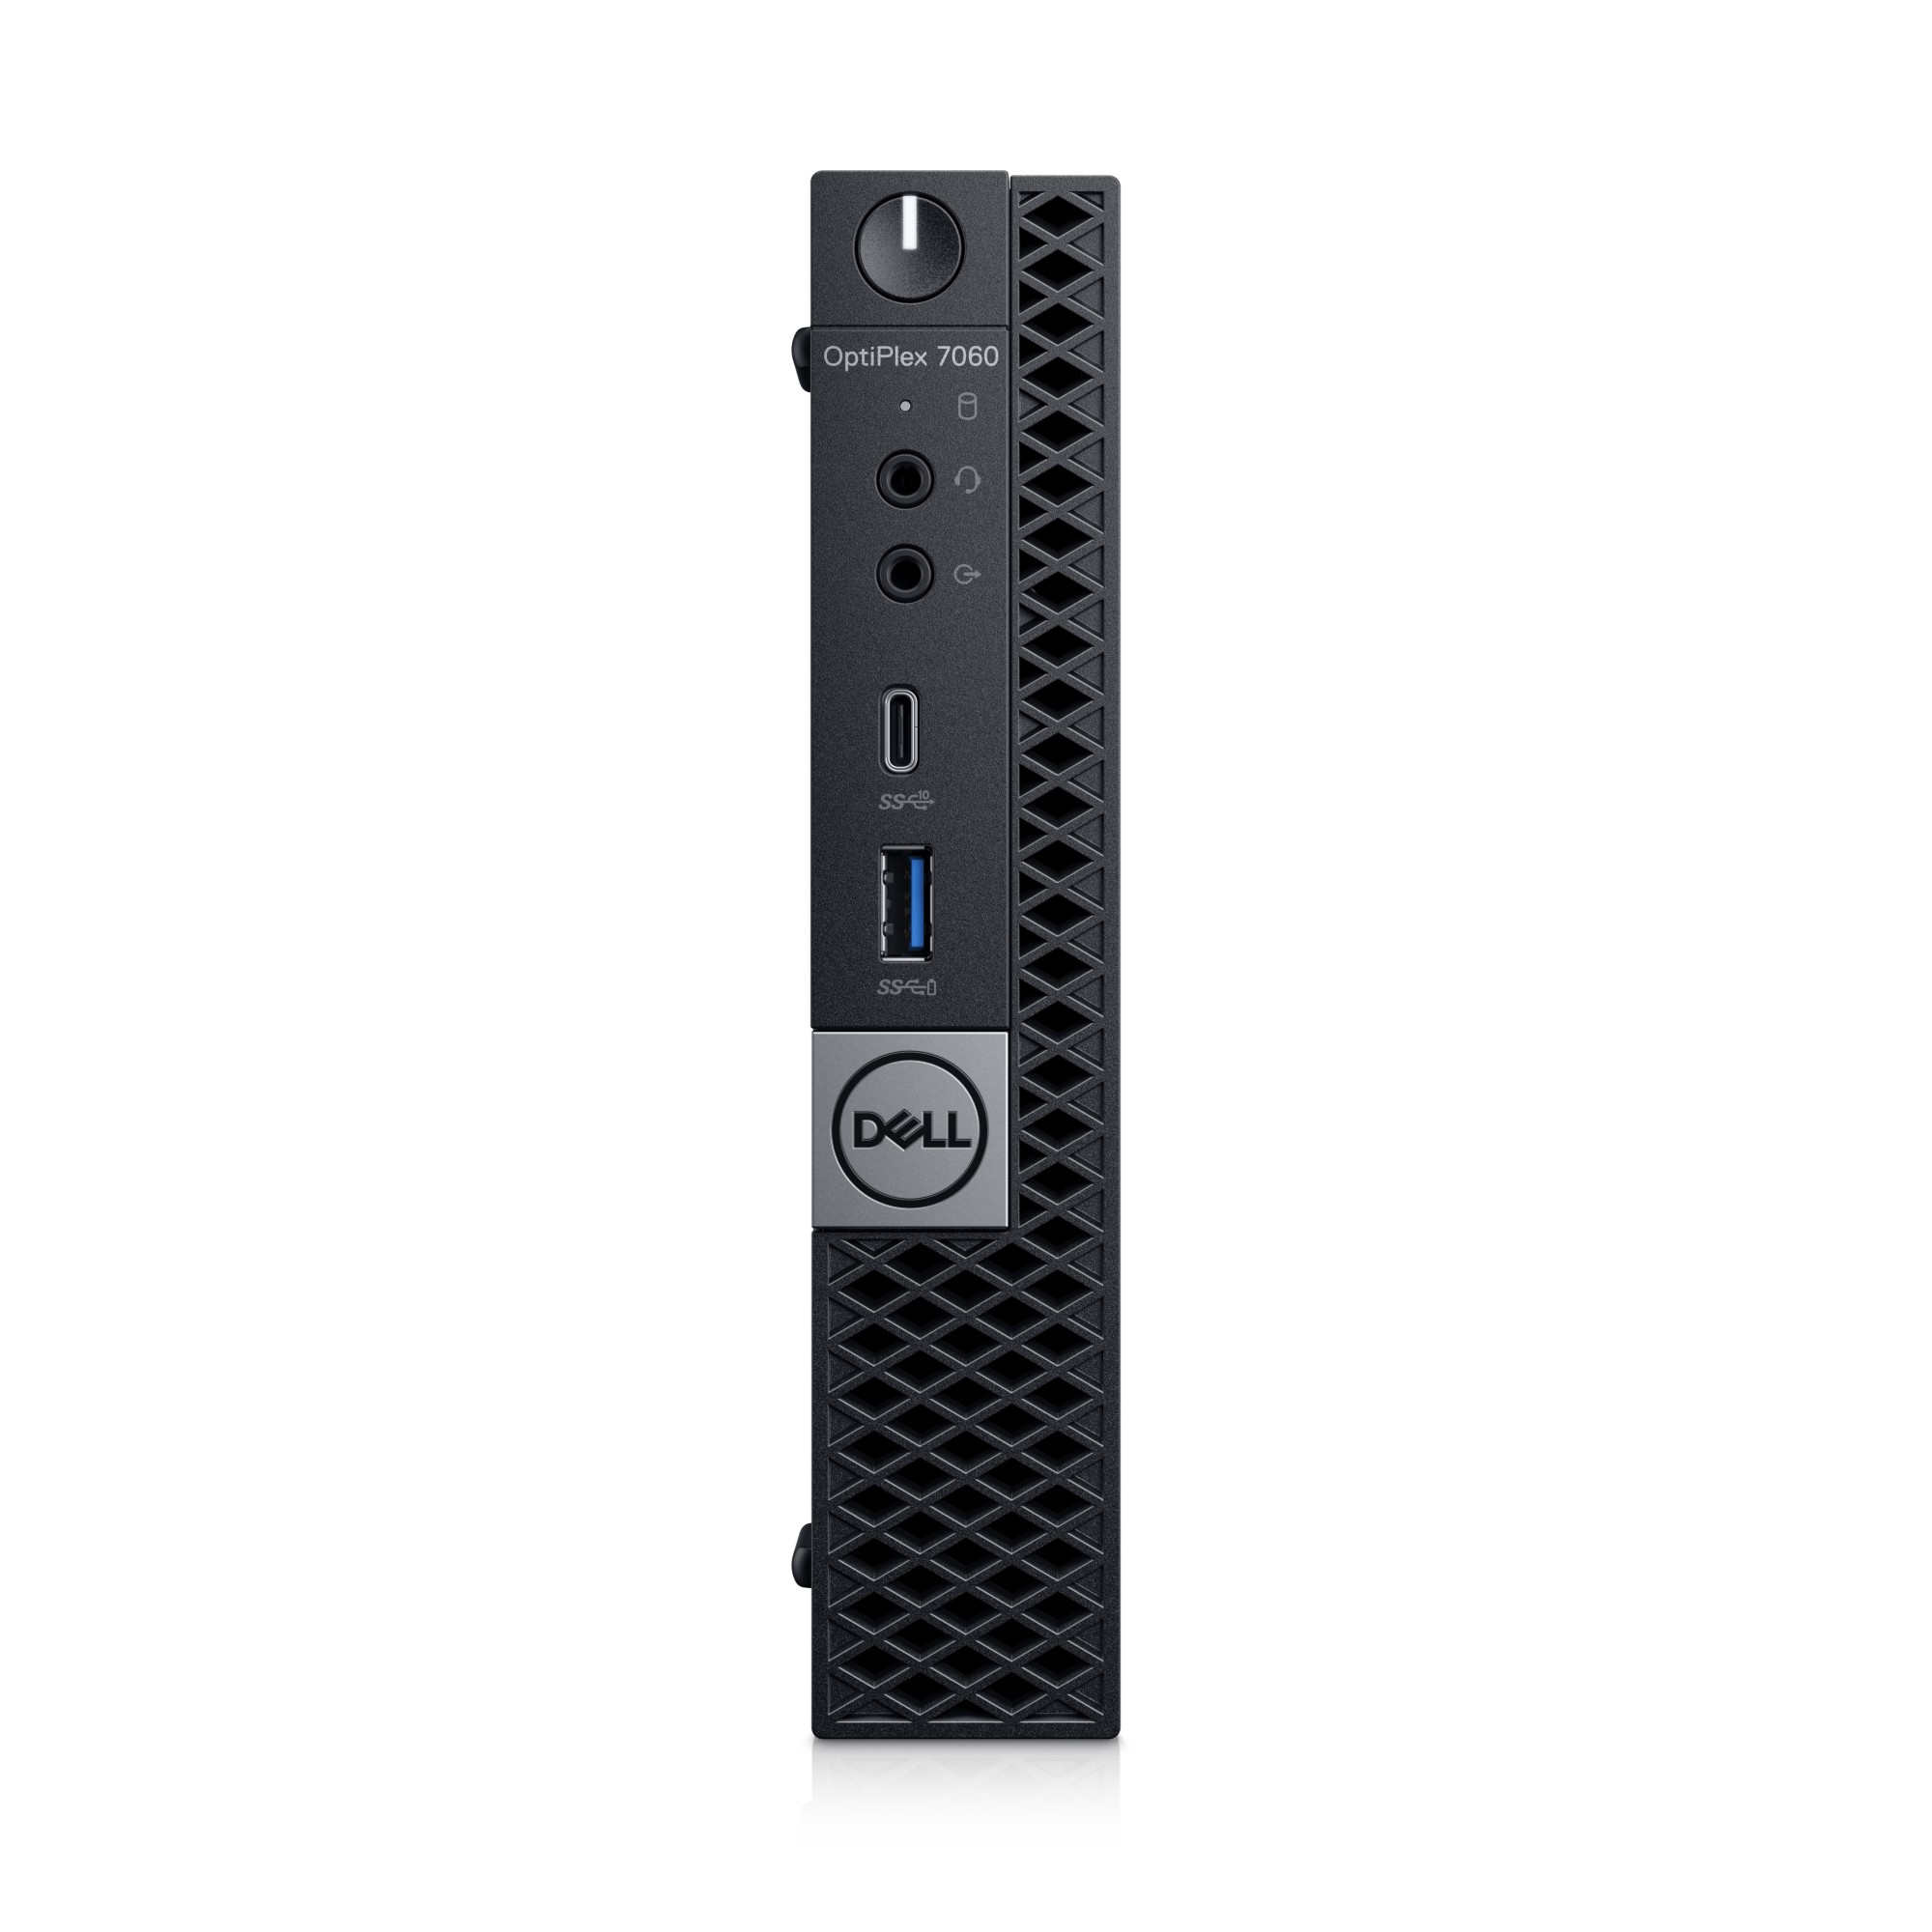 DELL CV3WX OPTIPLEX 7060 2.1GHZ USFF BLACK MINI PC